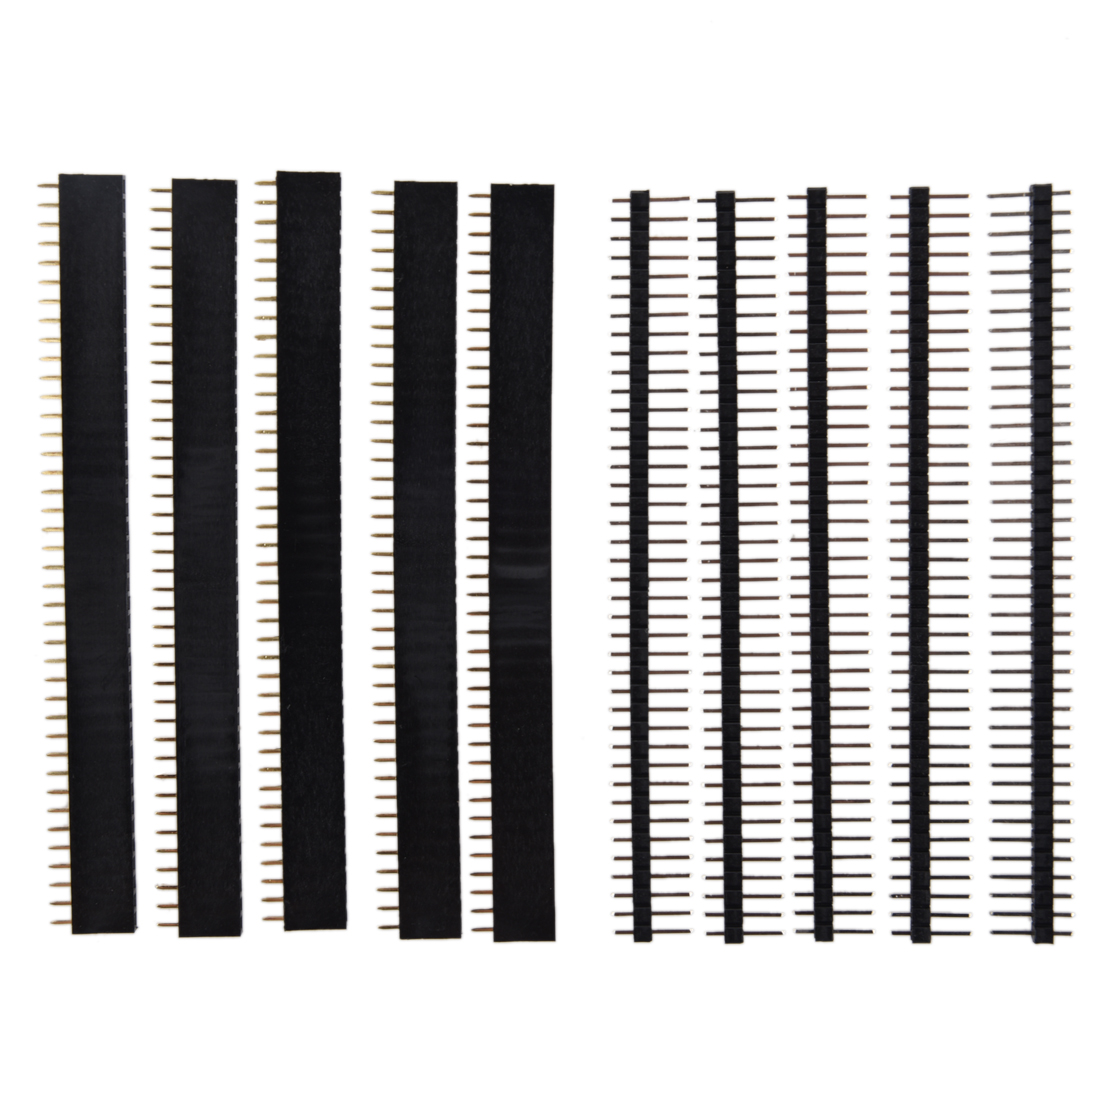 5 PCS Pack 40 Pin 2.54mm Single Row Straight Male + Female Pin Header Strip black 2 pcs new 2 54mm pitch 2x20 pin 40 pin female double row long pin header strip pc104 page 4